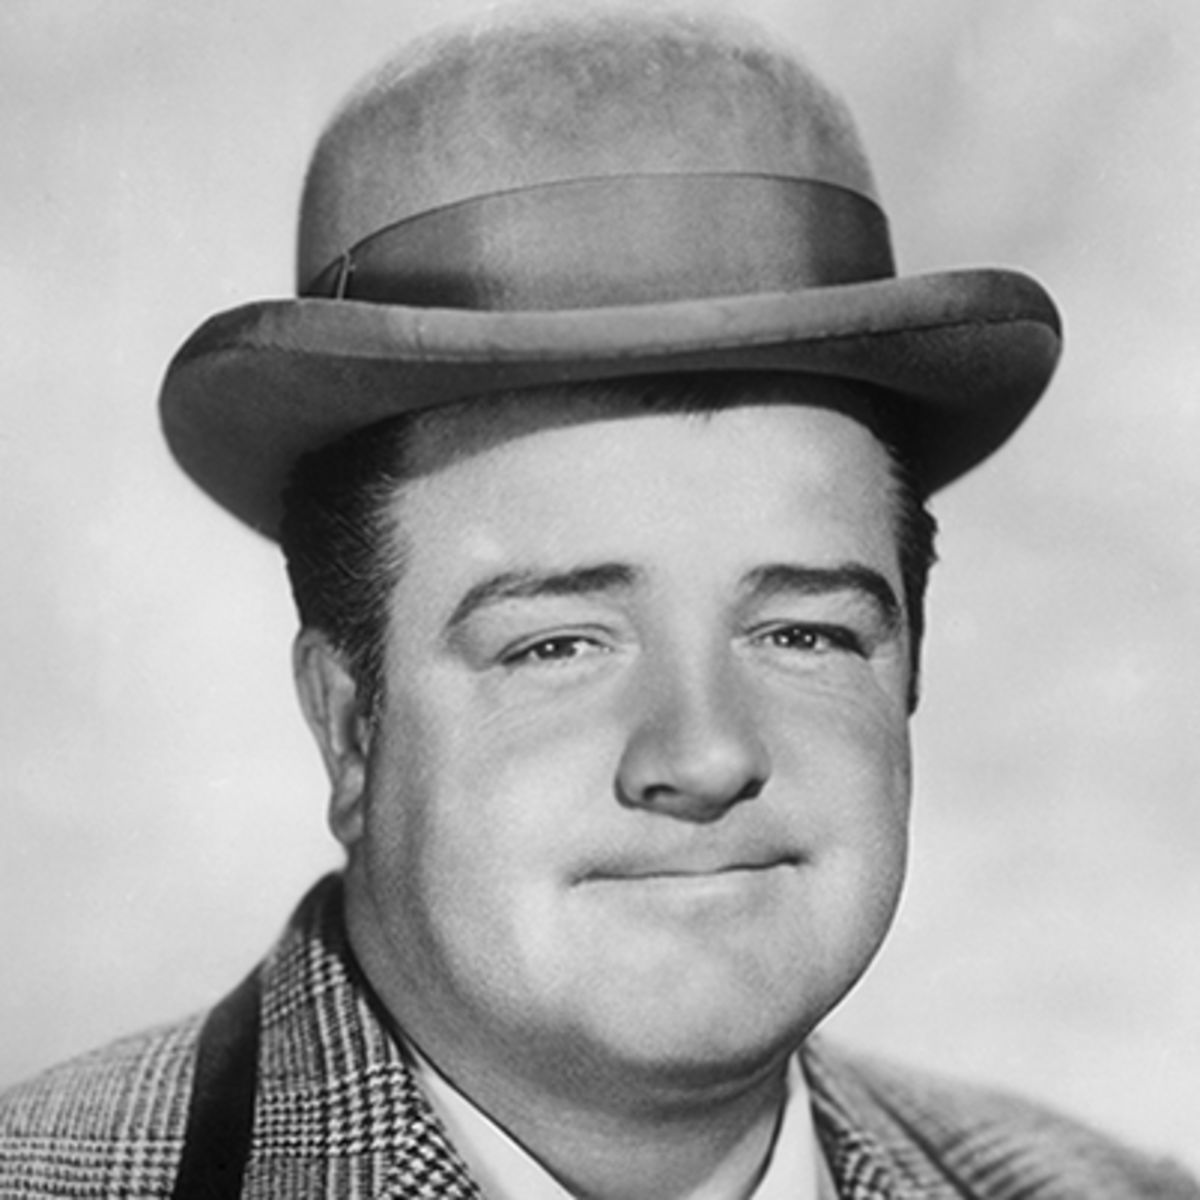 lou costello funerallou costello jr death, lou costello memorial, lou costello filmography, lou costello, lou costello and bud abbott, lou costello memorial park, lou costello funeral, lou costello net worth, lou costello statue, lou costello death, lou costello grave, lou costello biography, lou costello quotes, lou costello wife, lou costello who on first, lou costello park, lou costello this is your life, lou costello imdb, lou costello height weight, lou costello dj